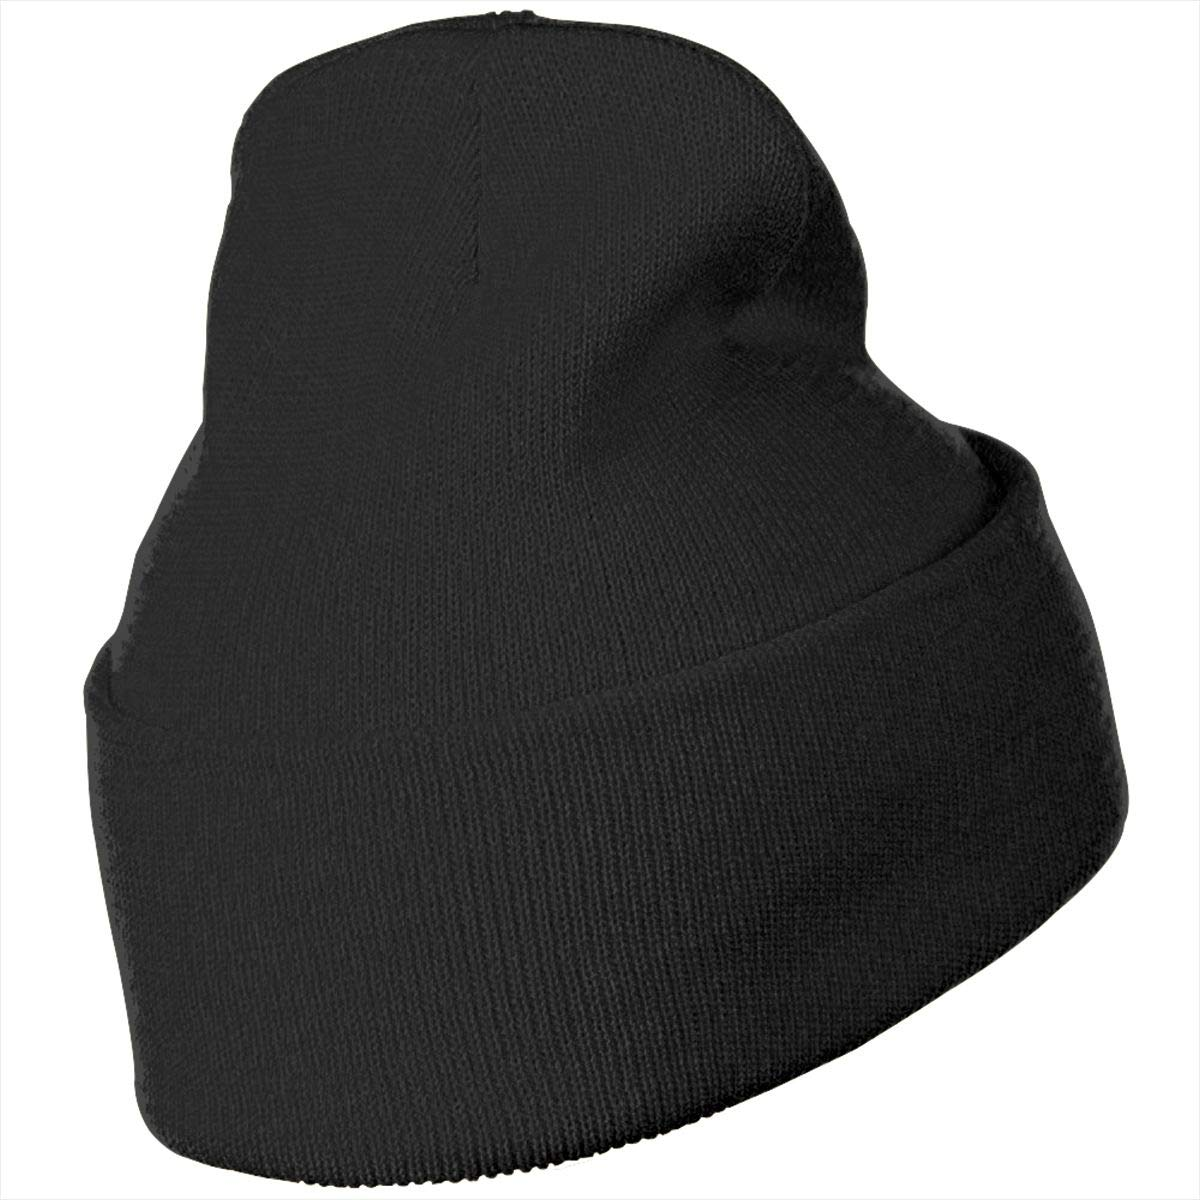 COLLJL-8 Men//Women Hawaii Outdoor Warm Knit Beanies Hat Soft Winter Knit Caps